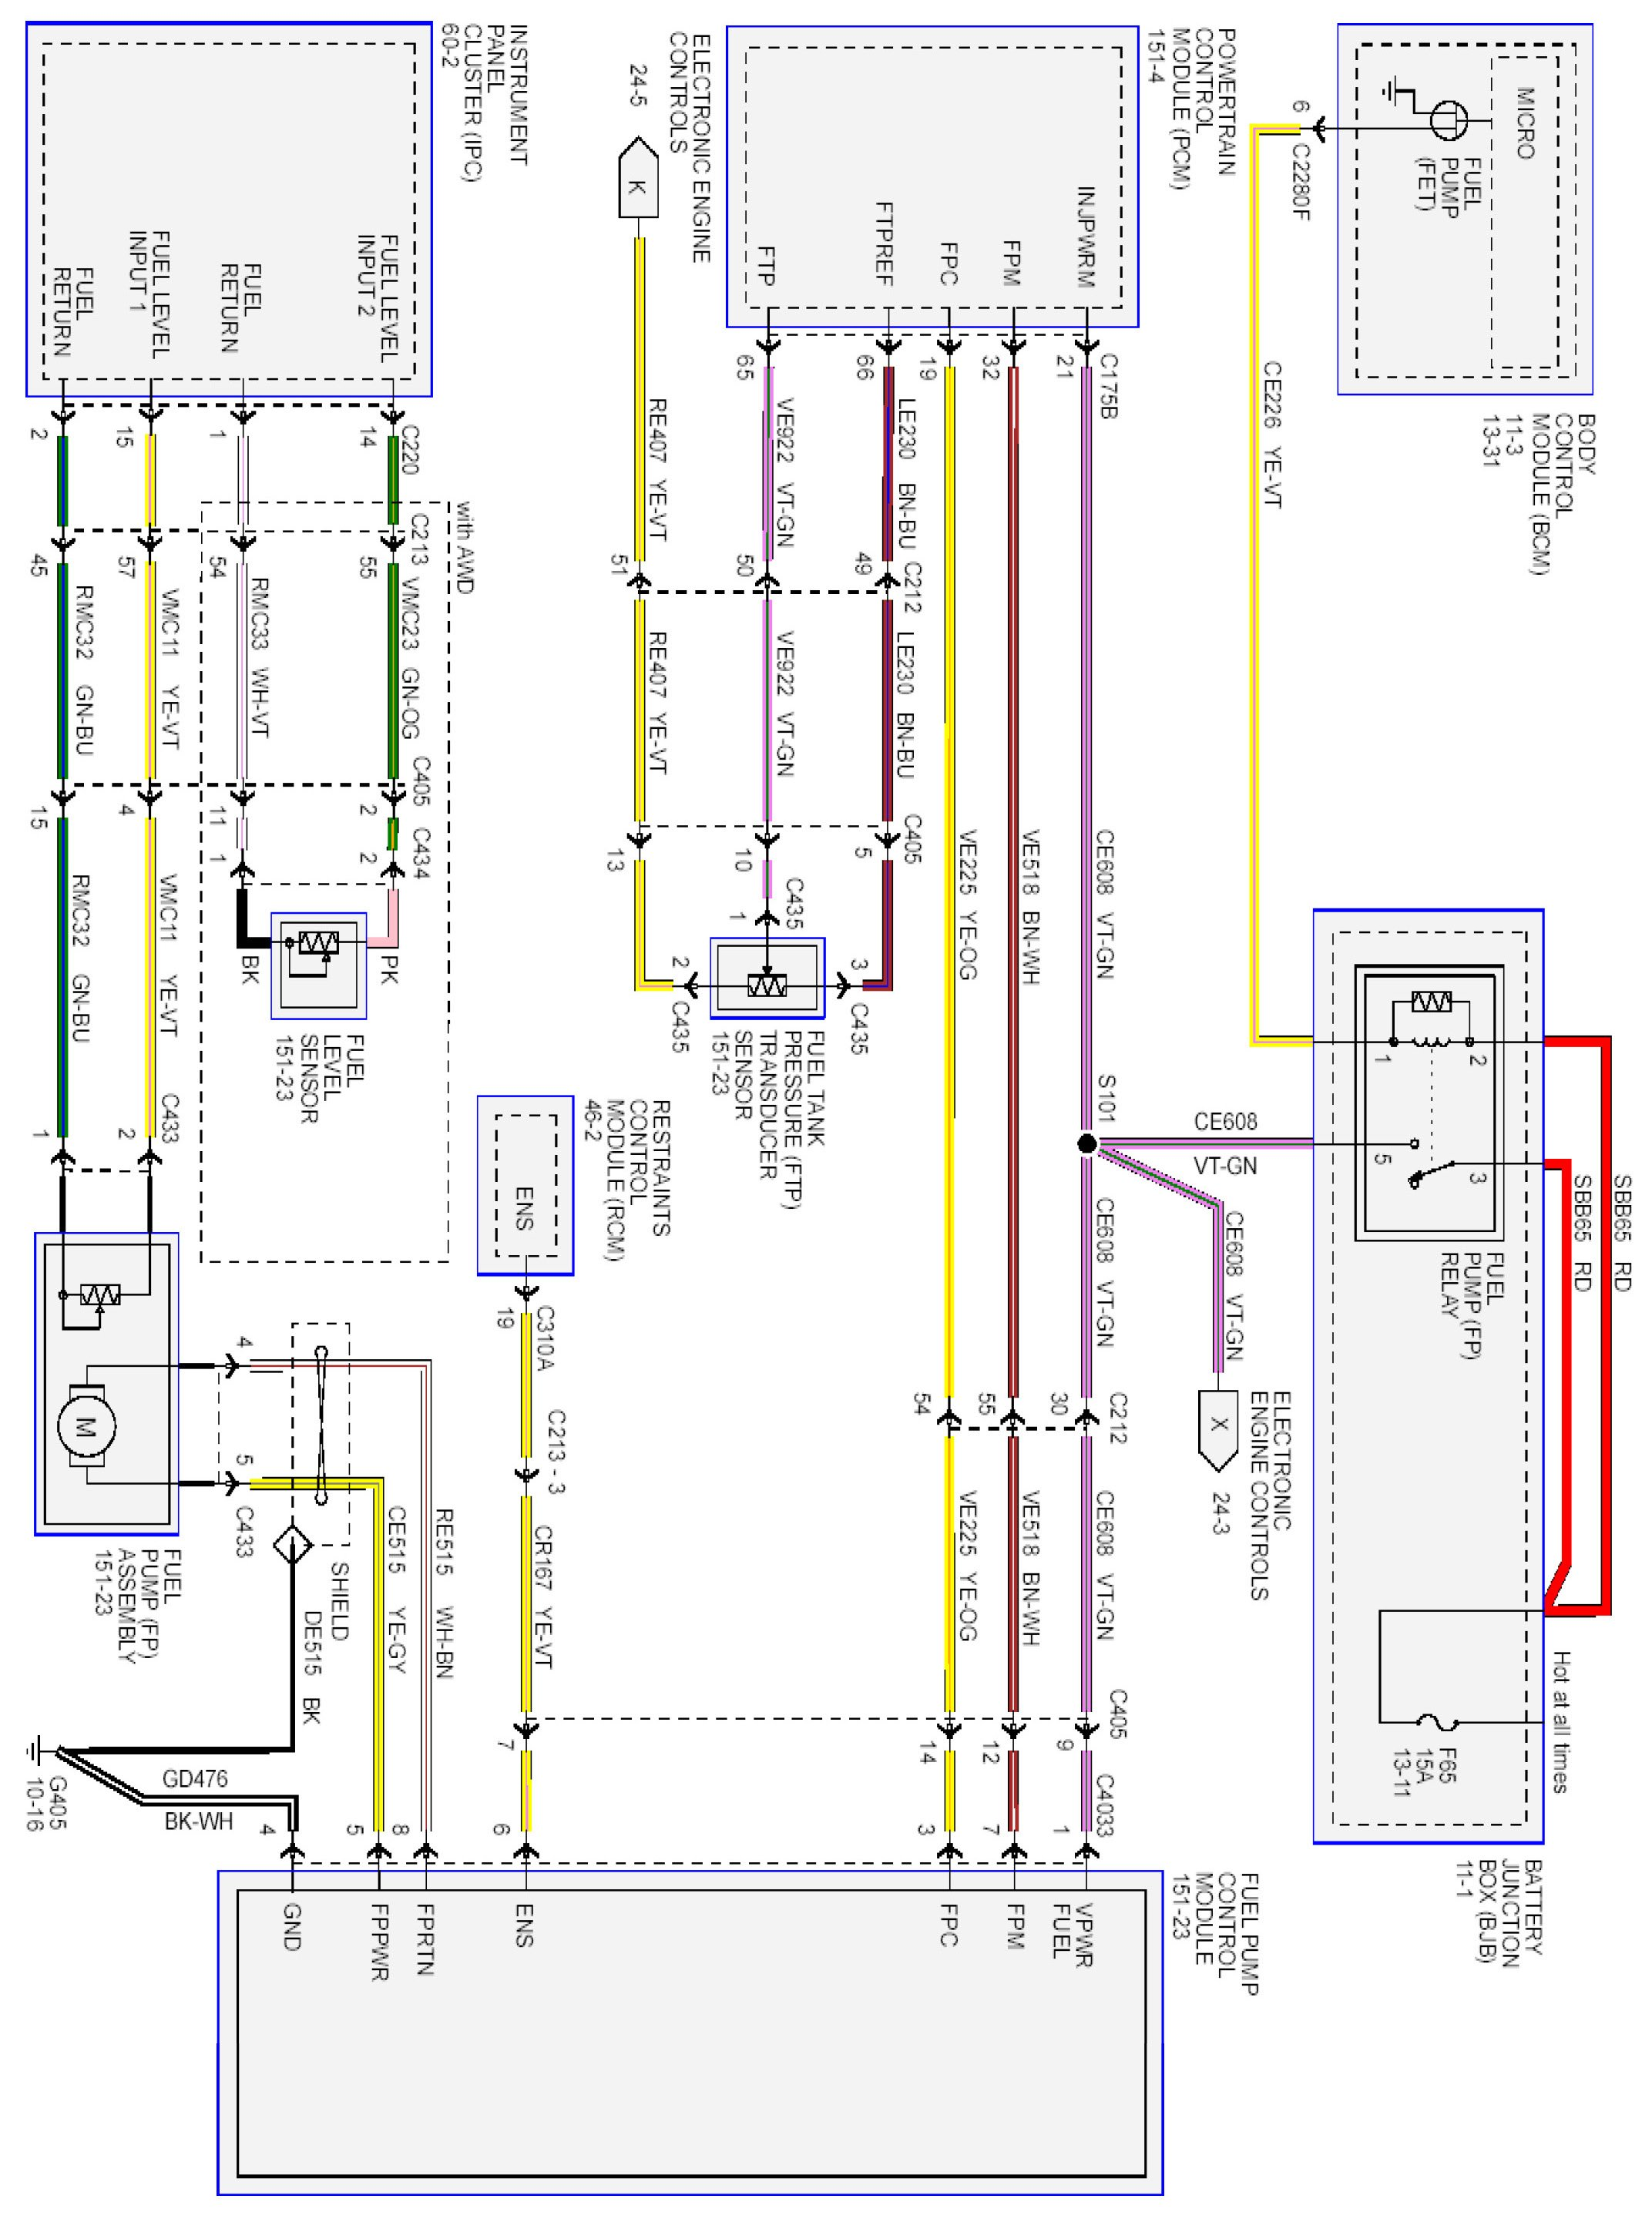 Ford Edge Electrical Diagram Books Of Wiring Diagram \u2022 Ford Edge  Trailer Wiring Diagram Ford Edge Wiring Diagram